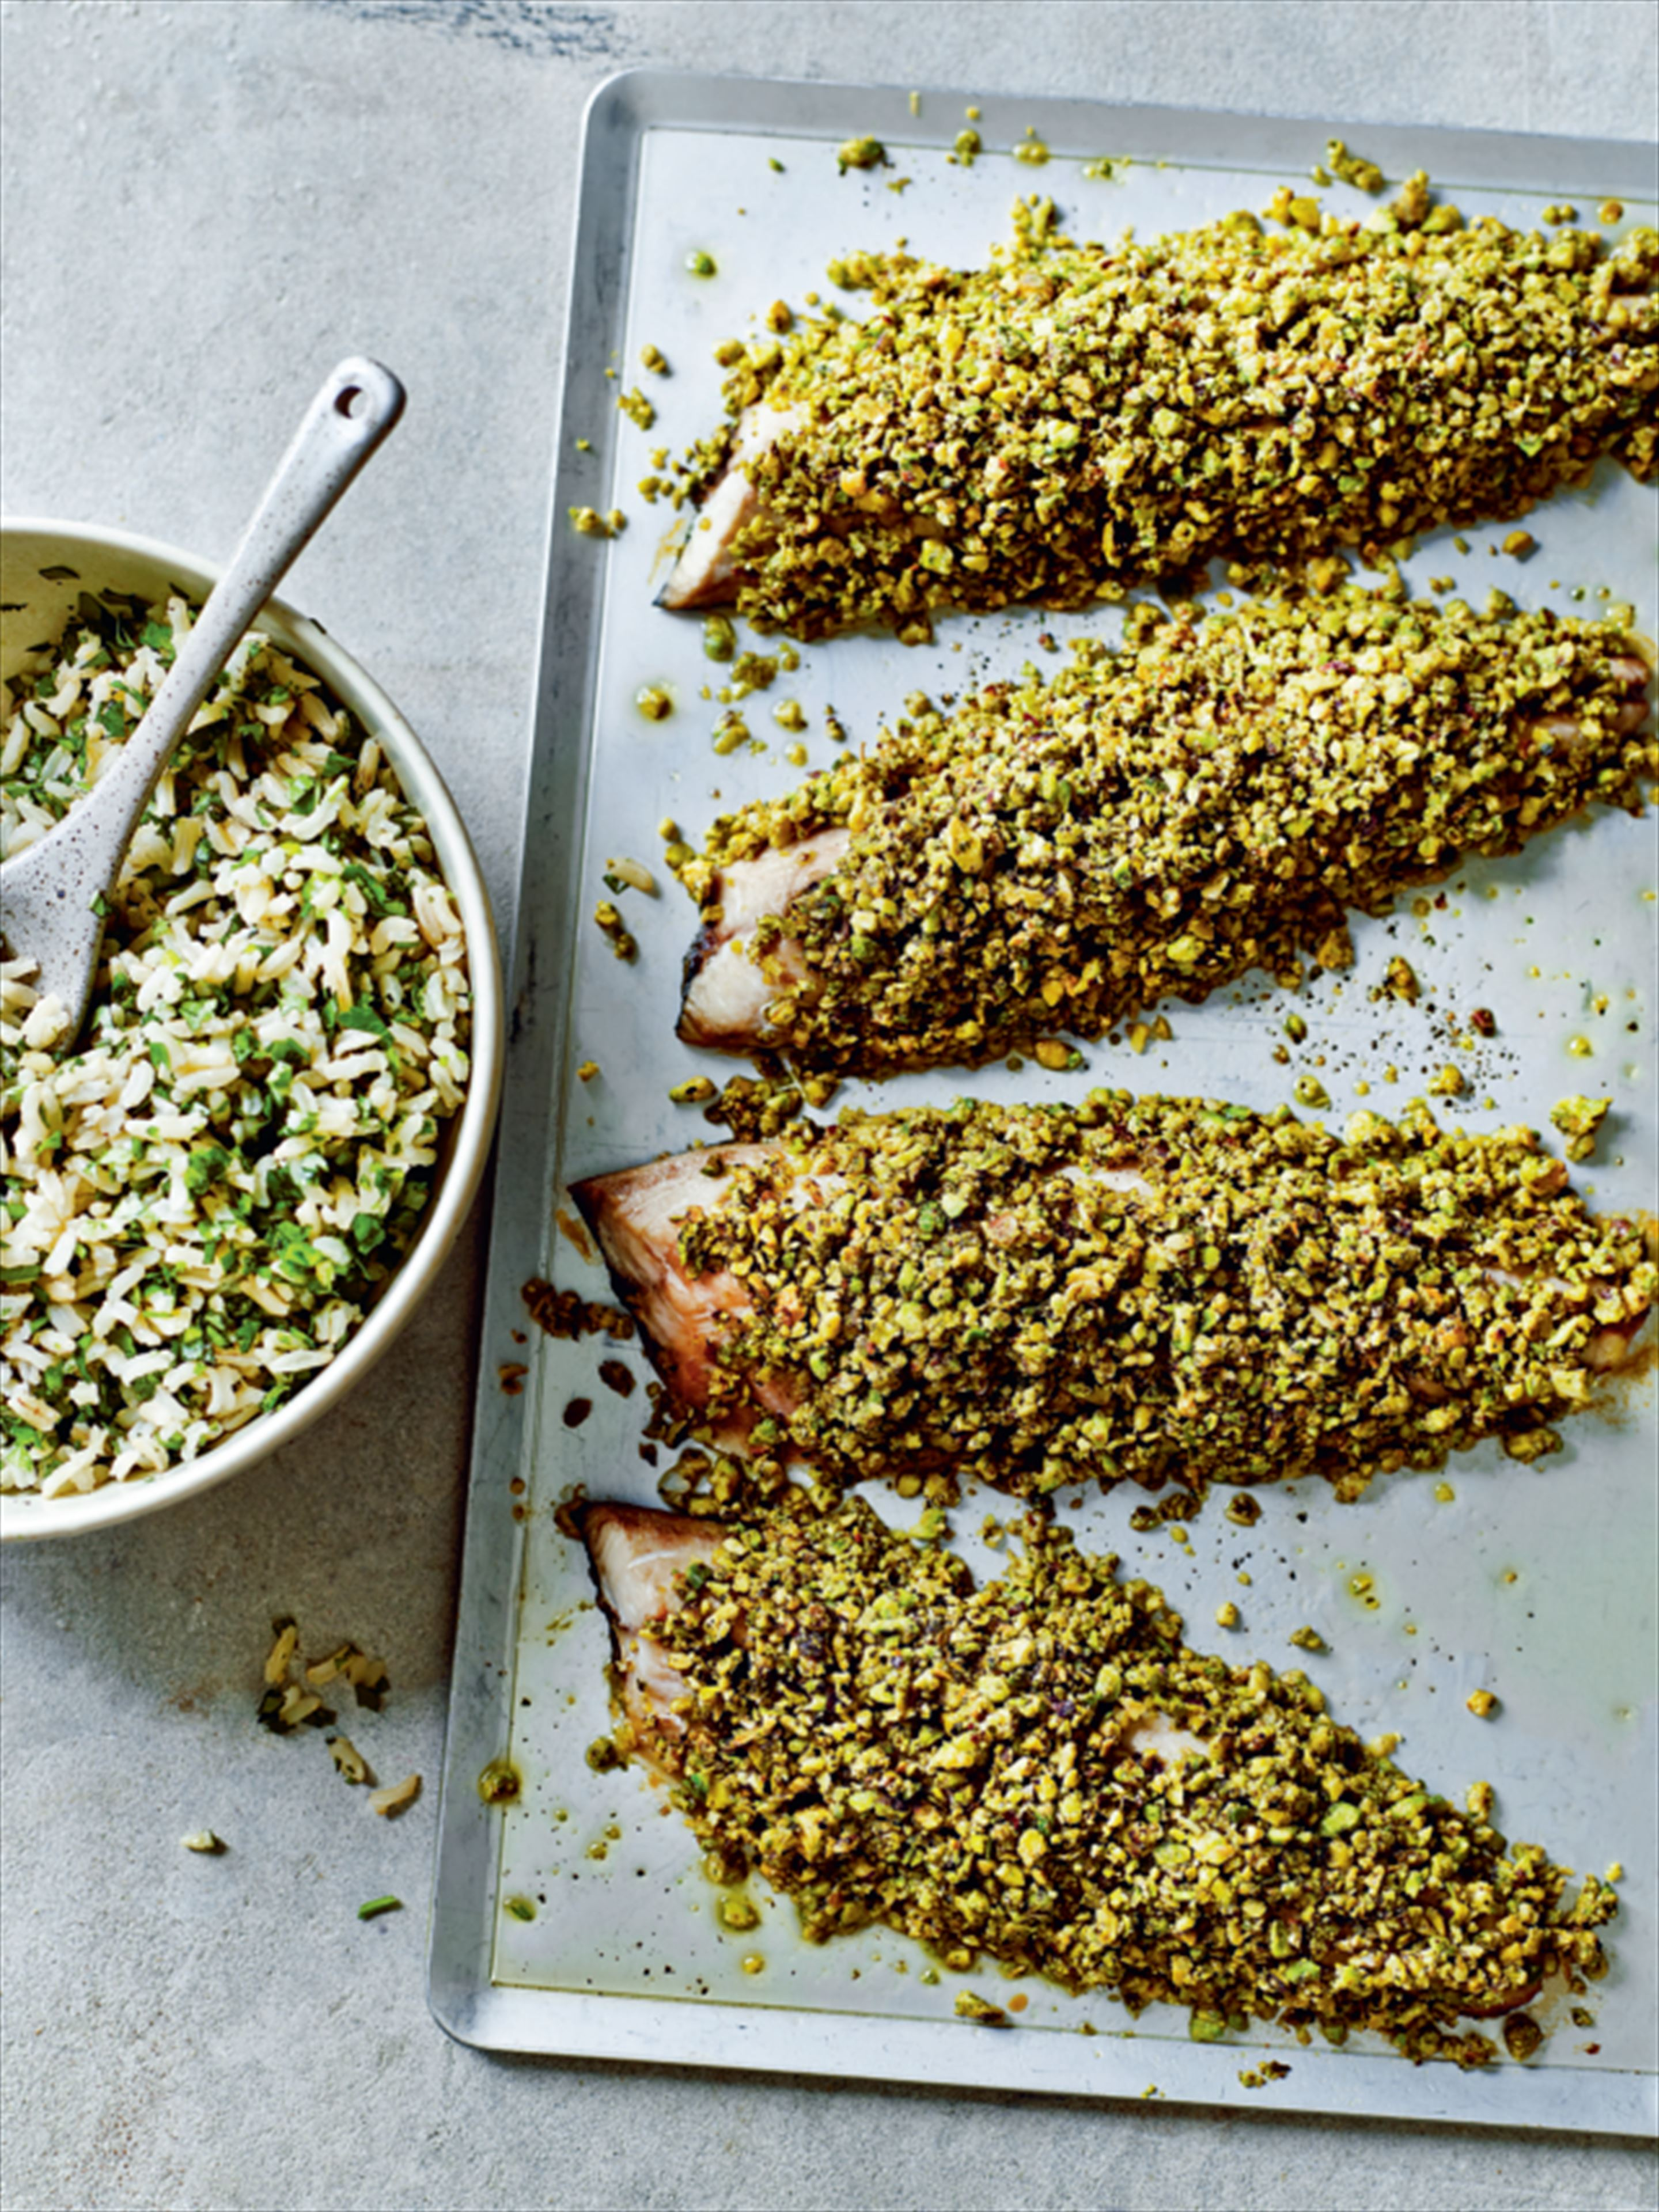 Pistachio-crusted mackerel with green rice